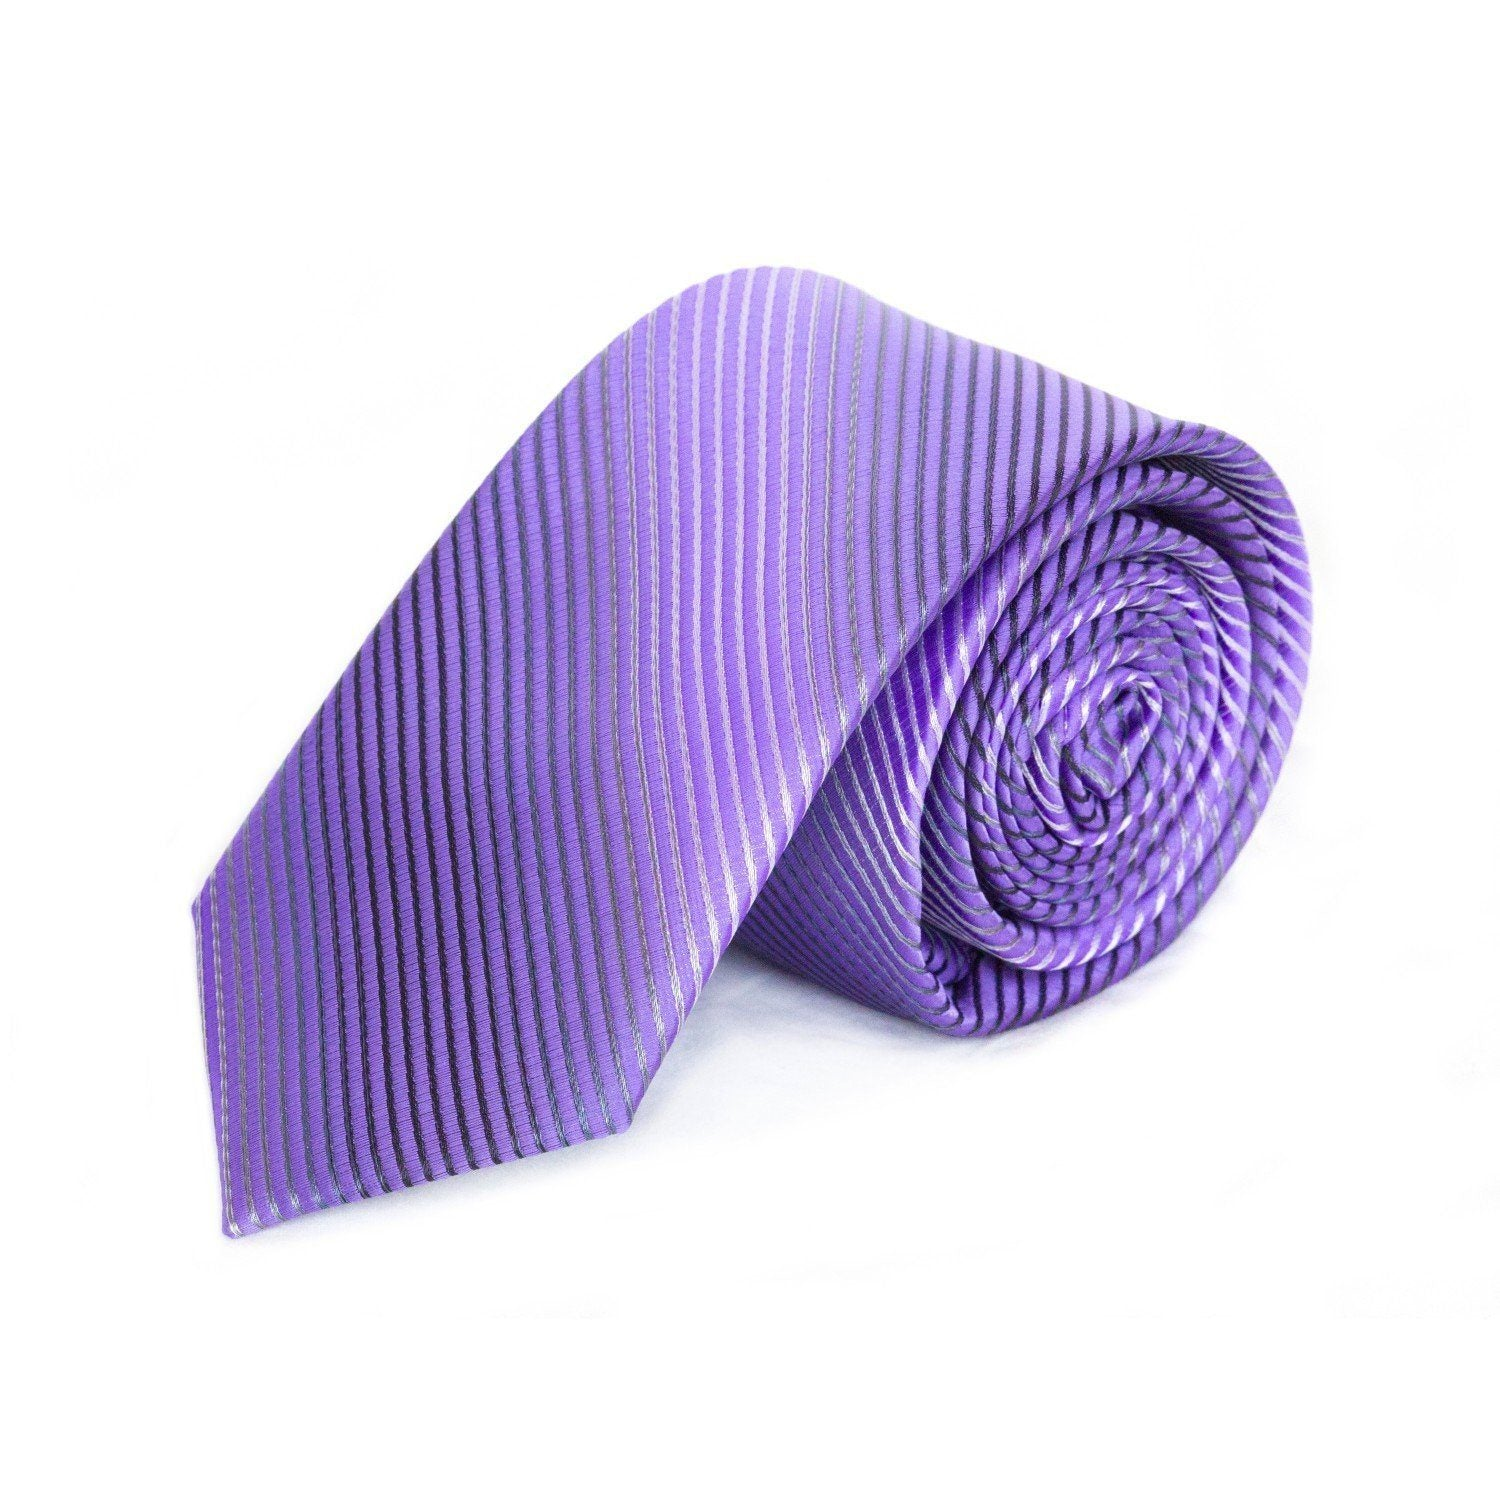 Light Purple Gradient MF Tie Ties Cuffed.com.au